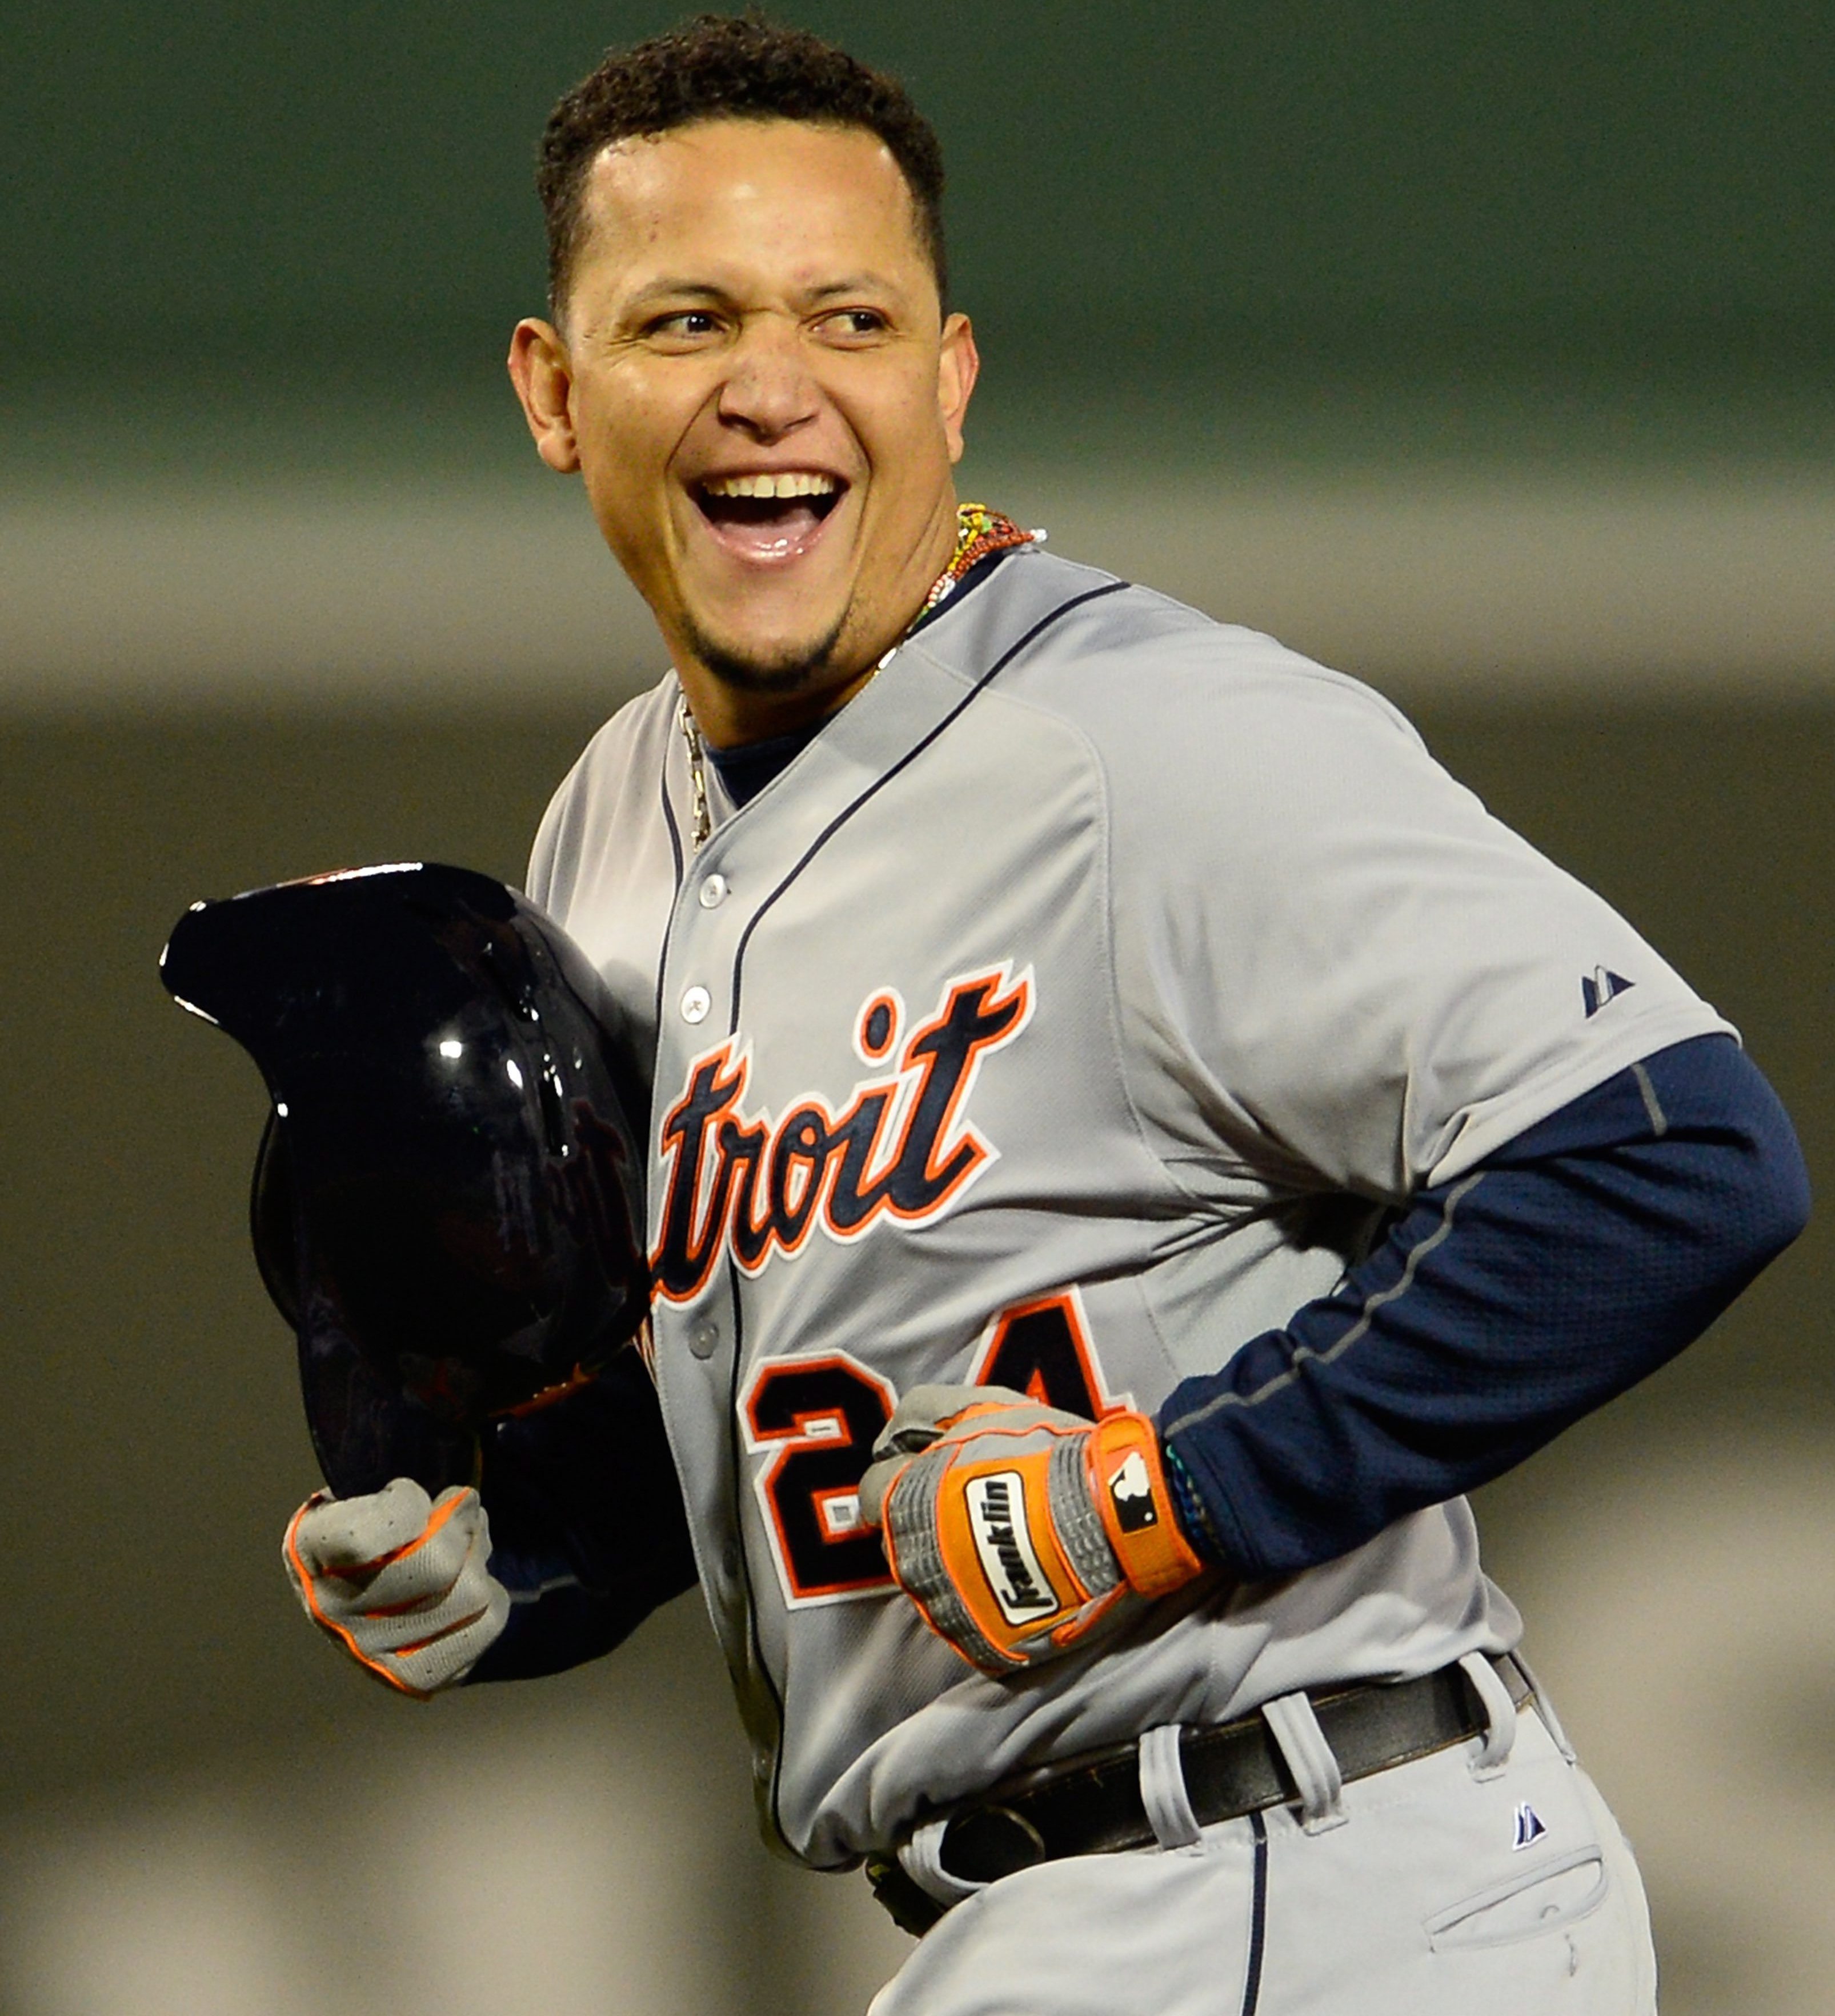 $292M For Baseball's Miguel Cabrera? Let's Dig Into That ...